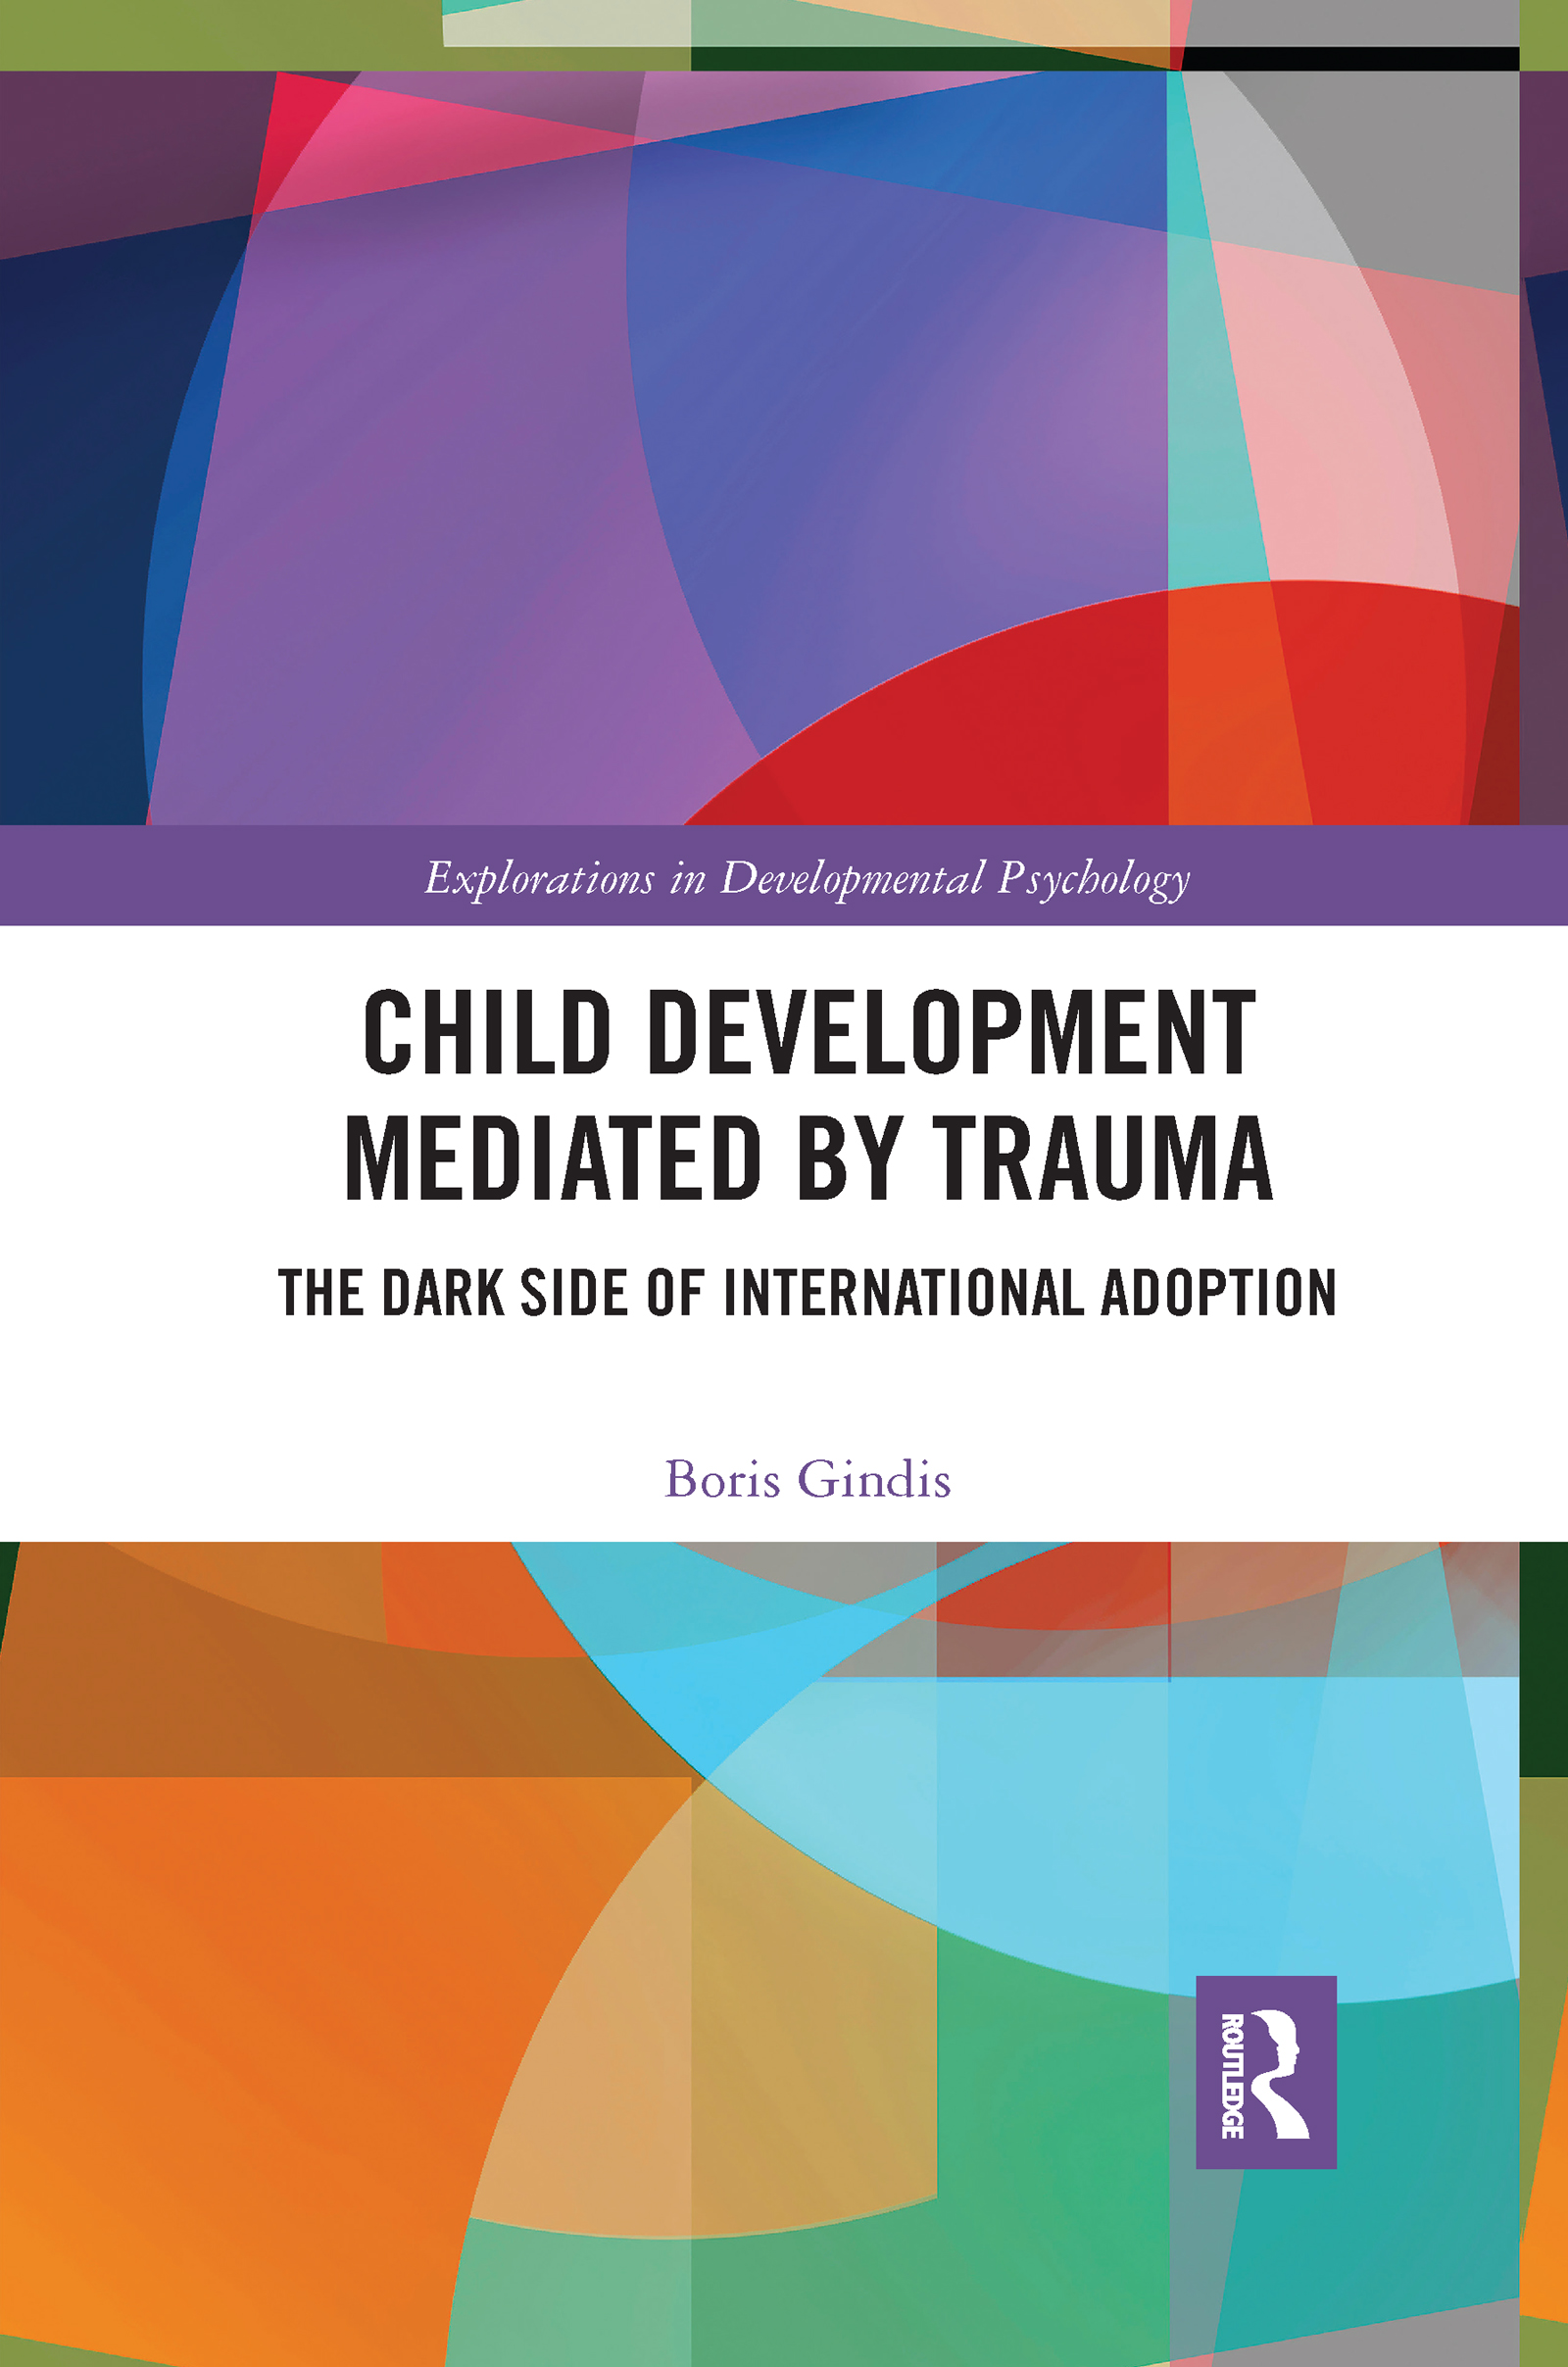 Child Development Mediated by Trauma